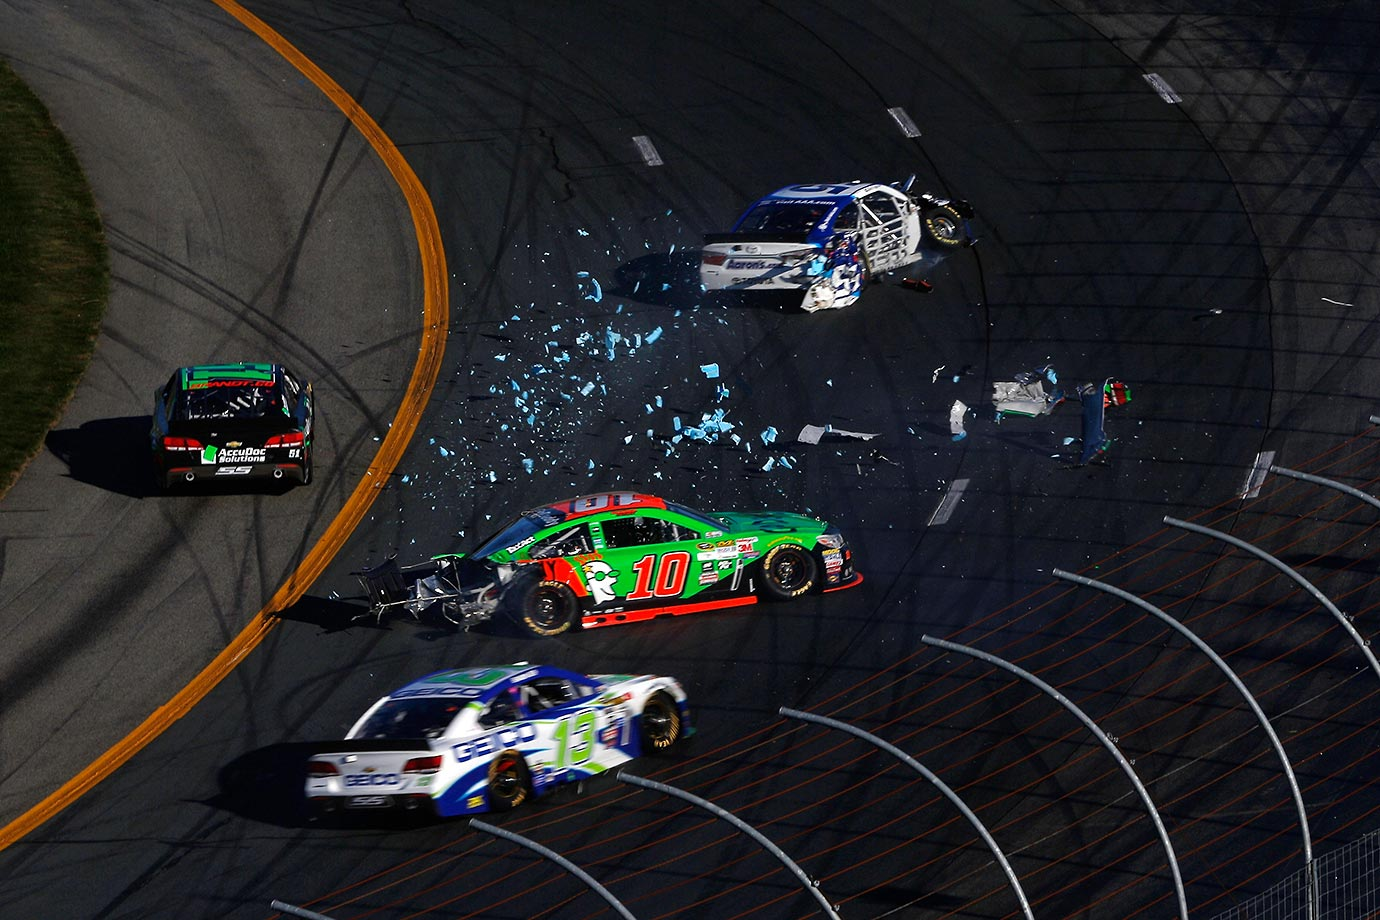 David Ragan (top) knocks the rear end off Danica Patrick's car during the NASCAR Sprint Cup Series SYLVANIA 300 at New Hampshire Motor Speedway.